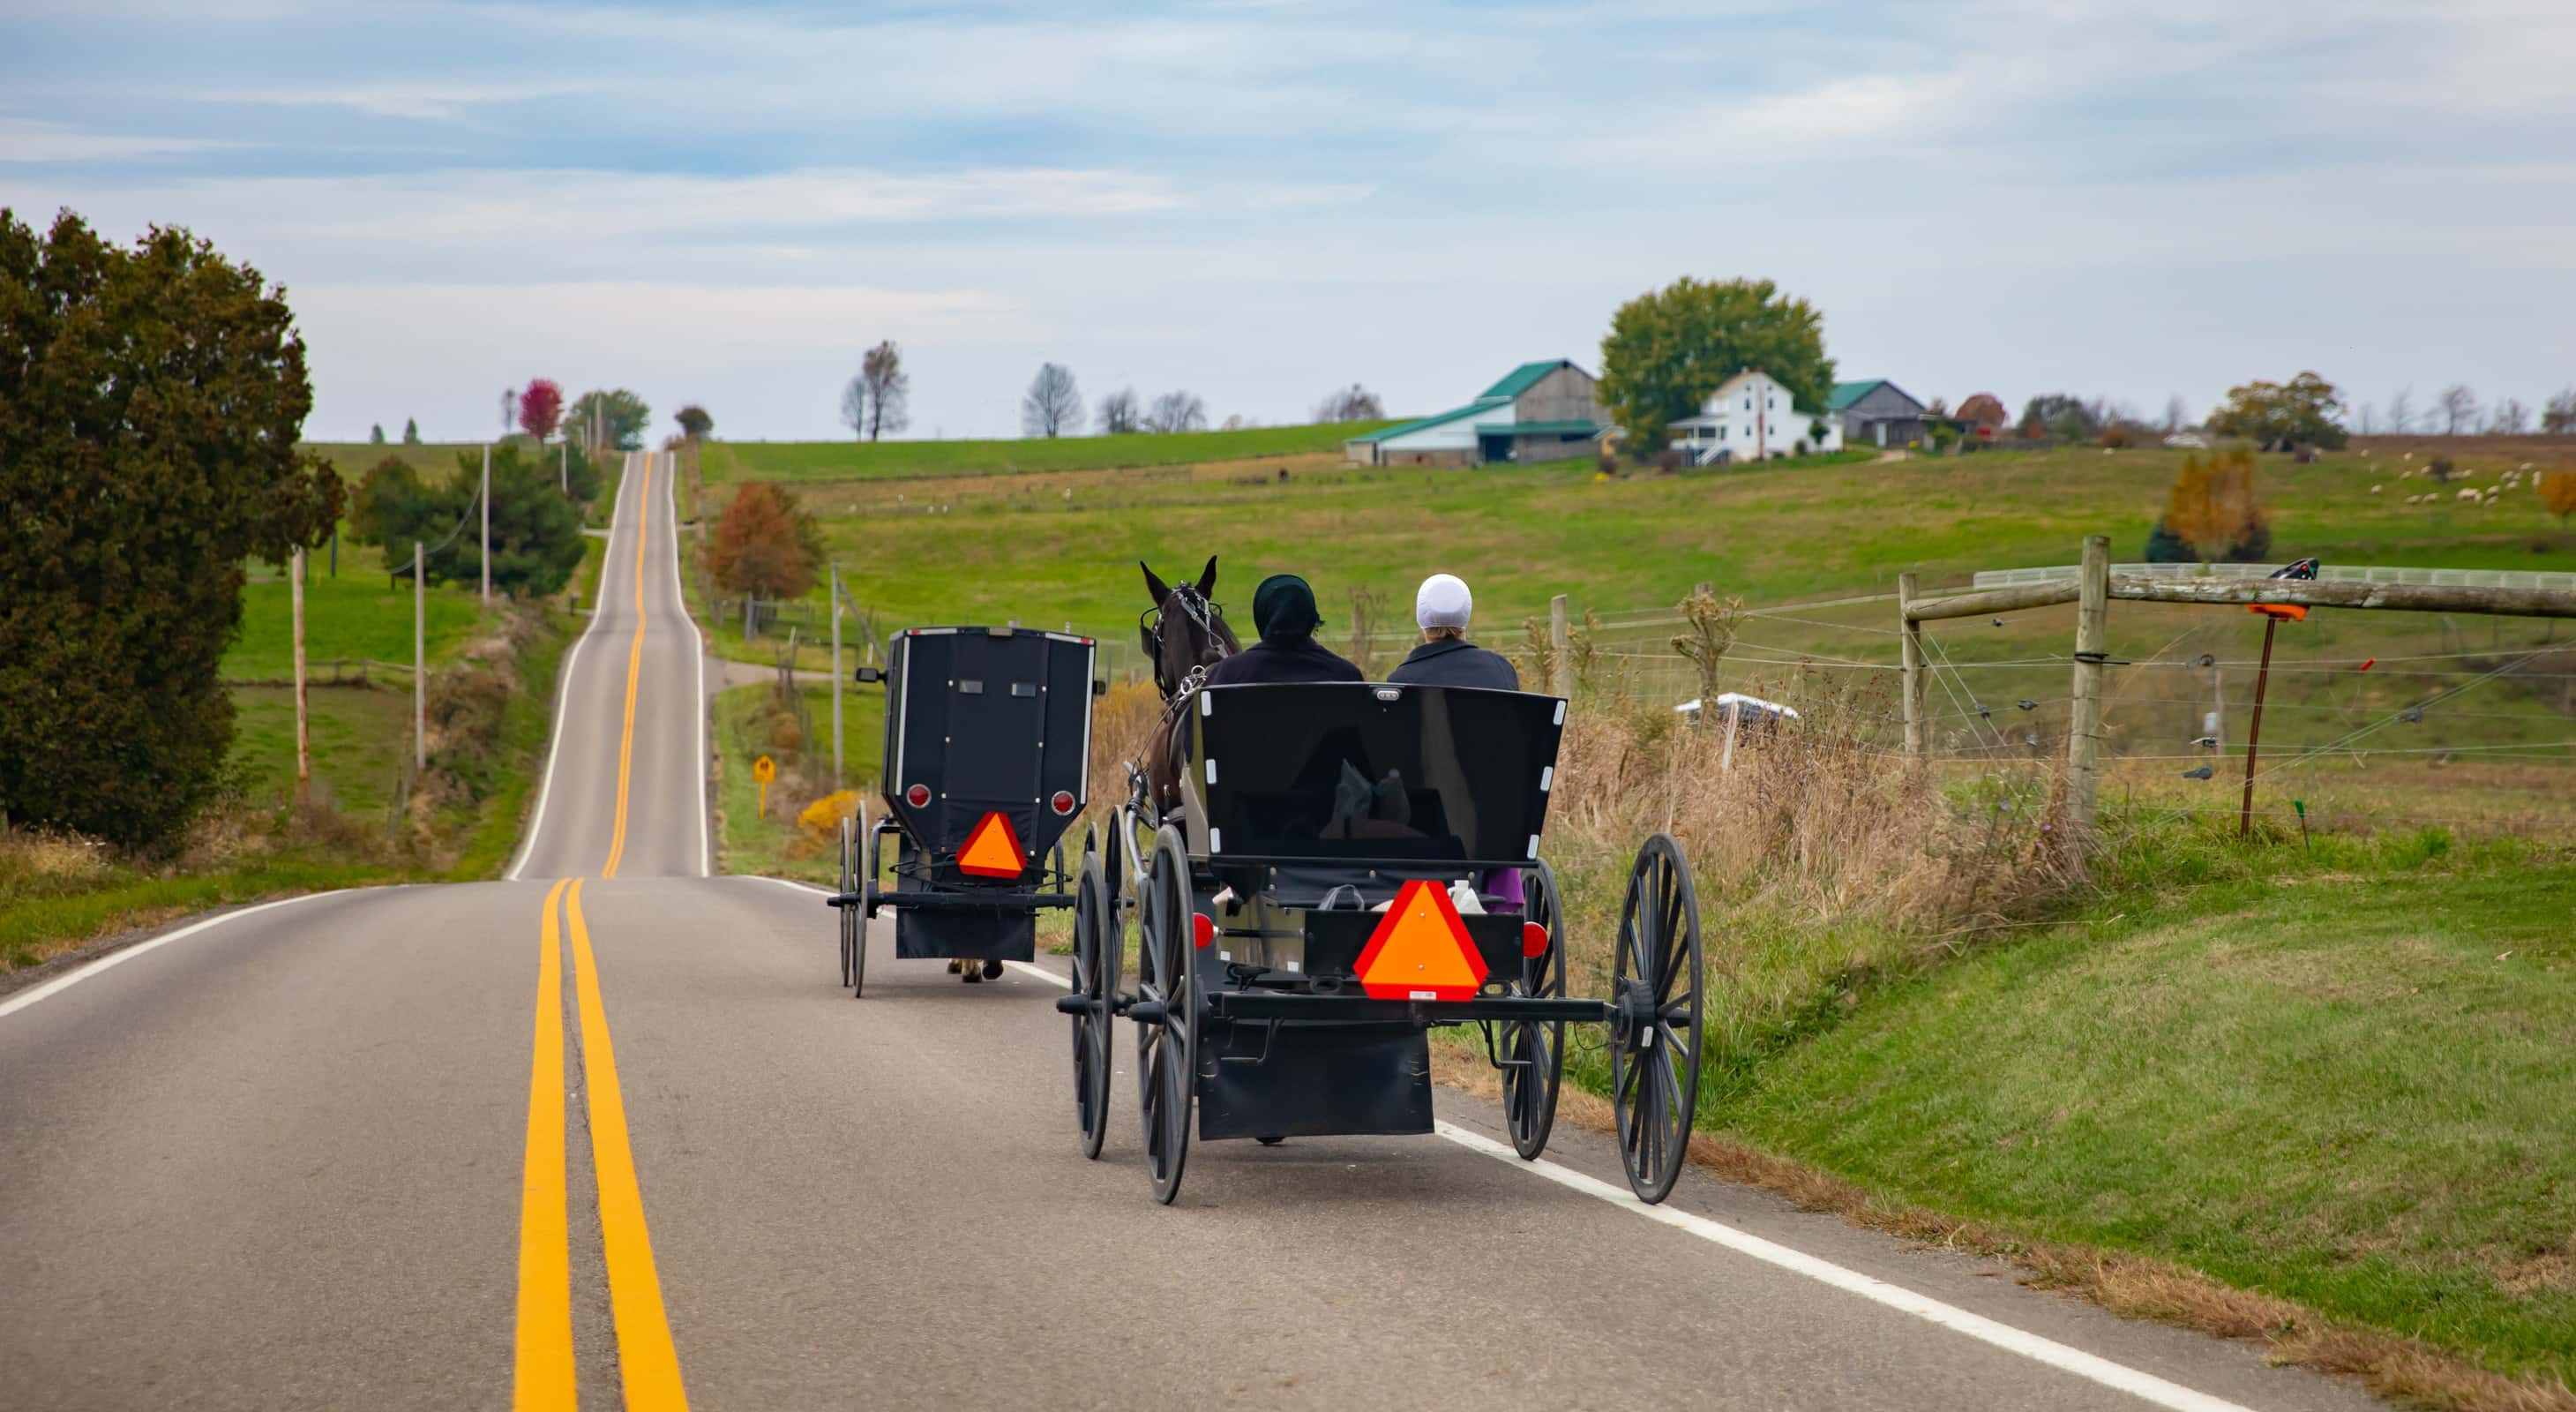 Amish horse and buggy on an Ohio country road